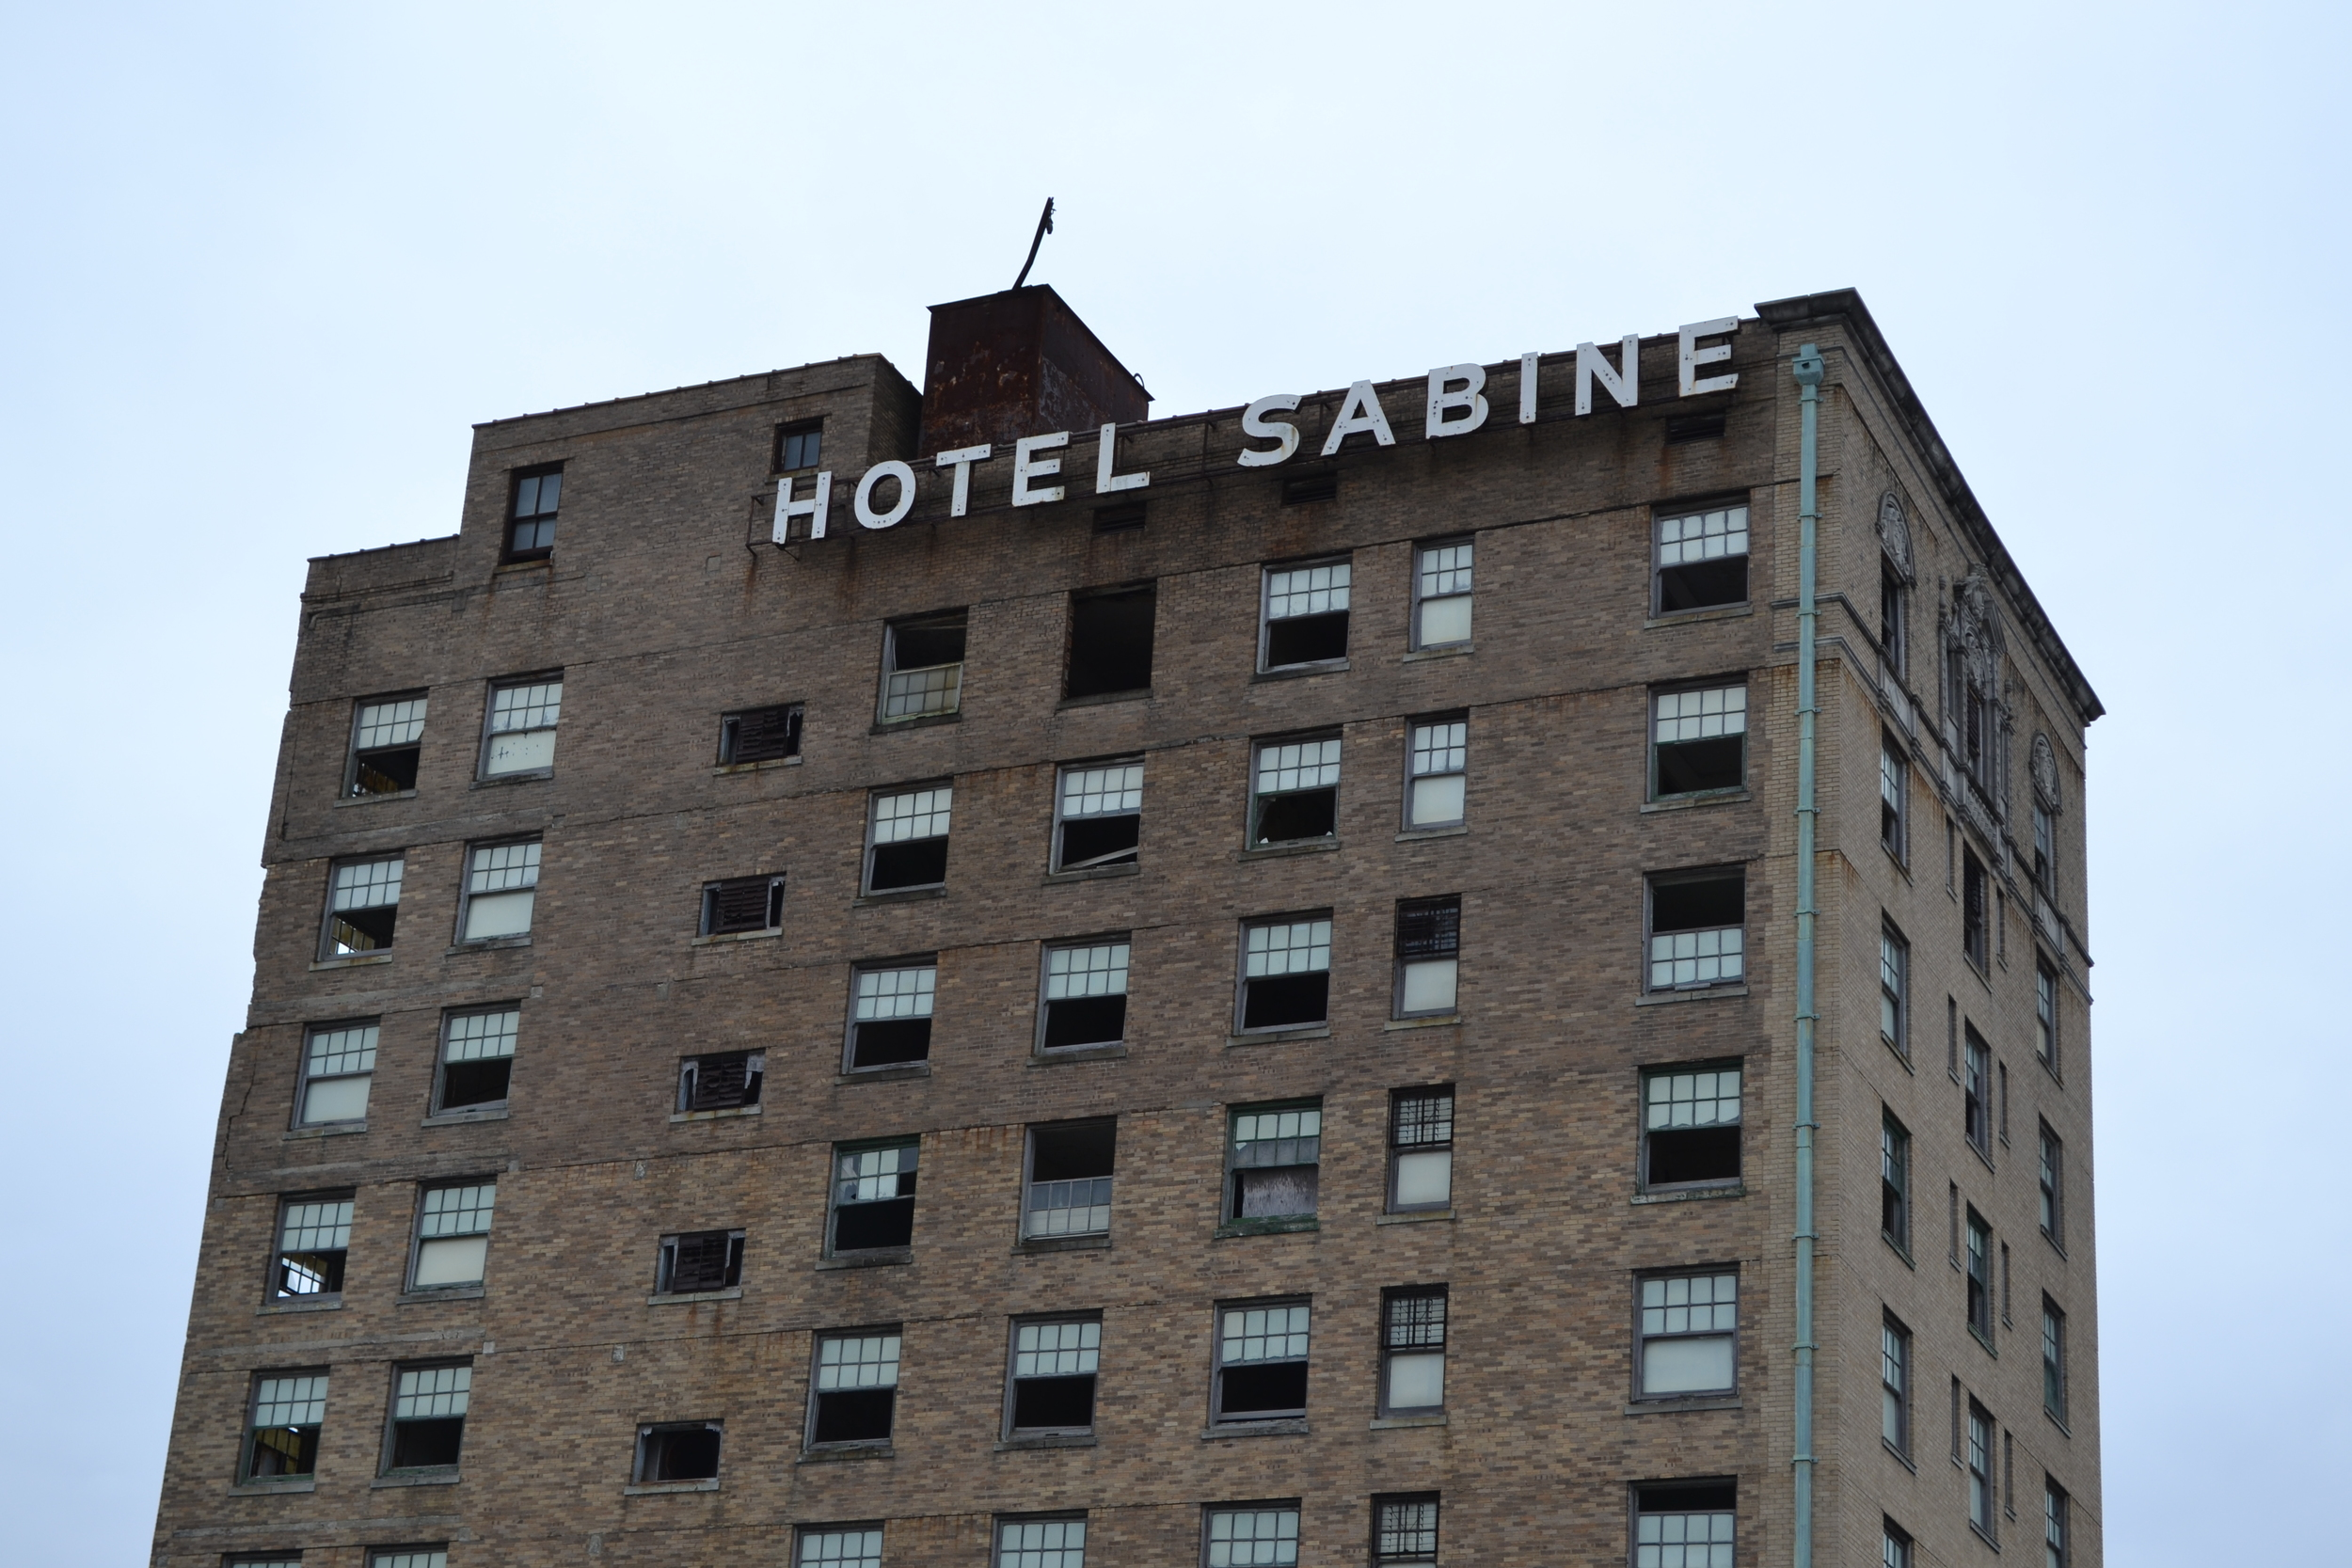 The abandoned, 10-story Hotel Sabine in donwtown Port Arthur, TX